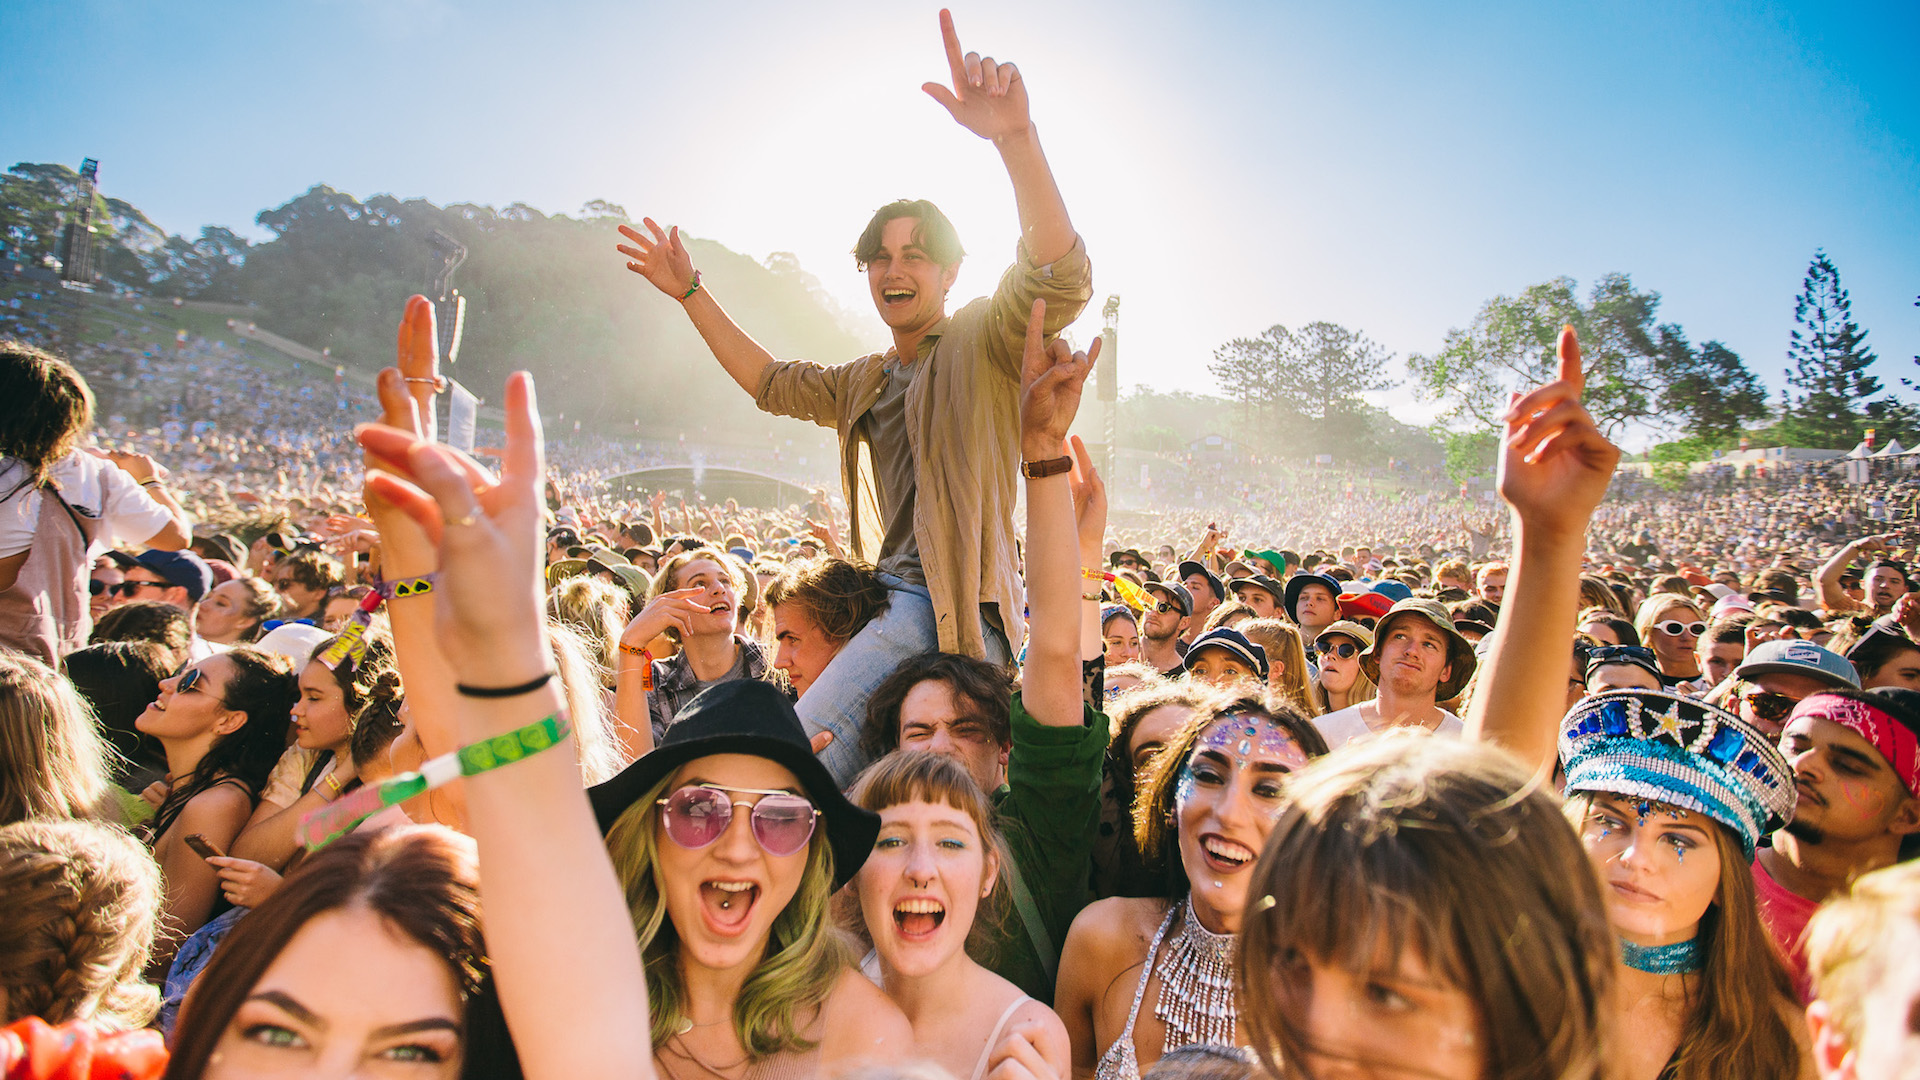 splendour-2017-crowd-photo-supplied-credit-Bianca-Holderness.jpg